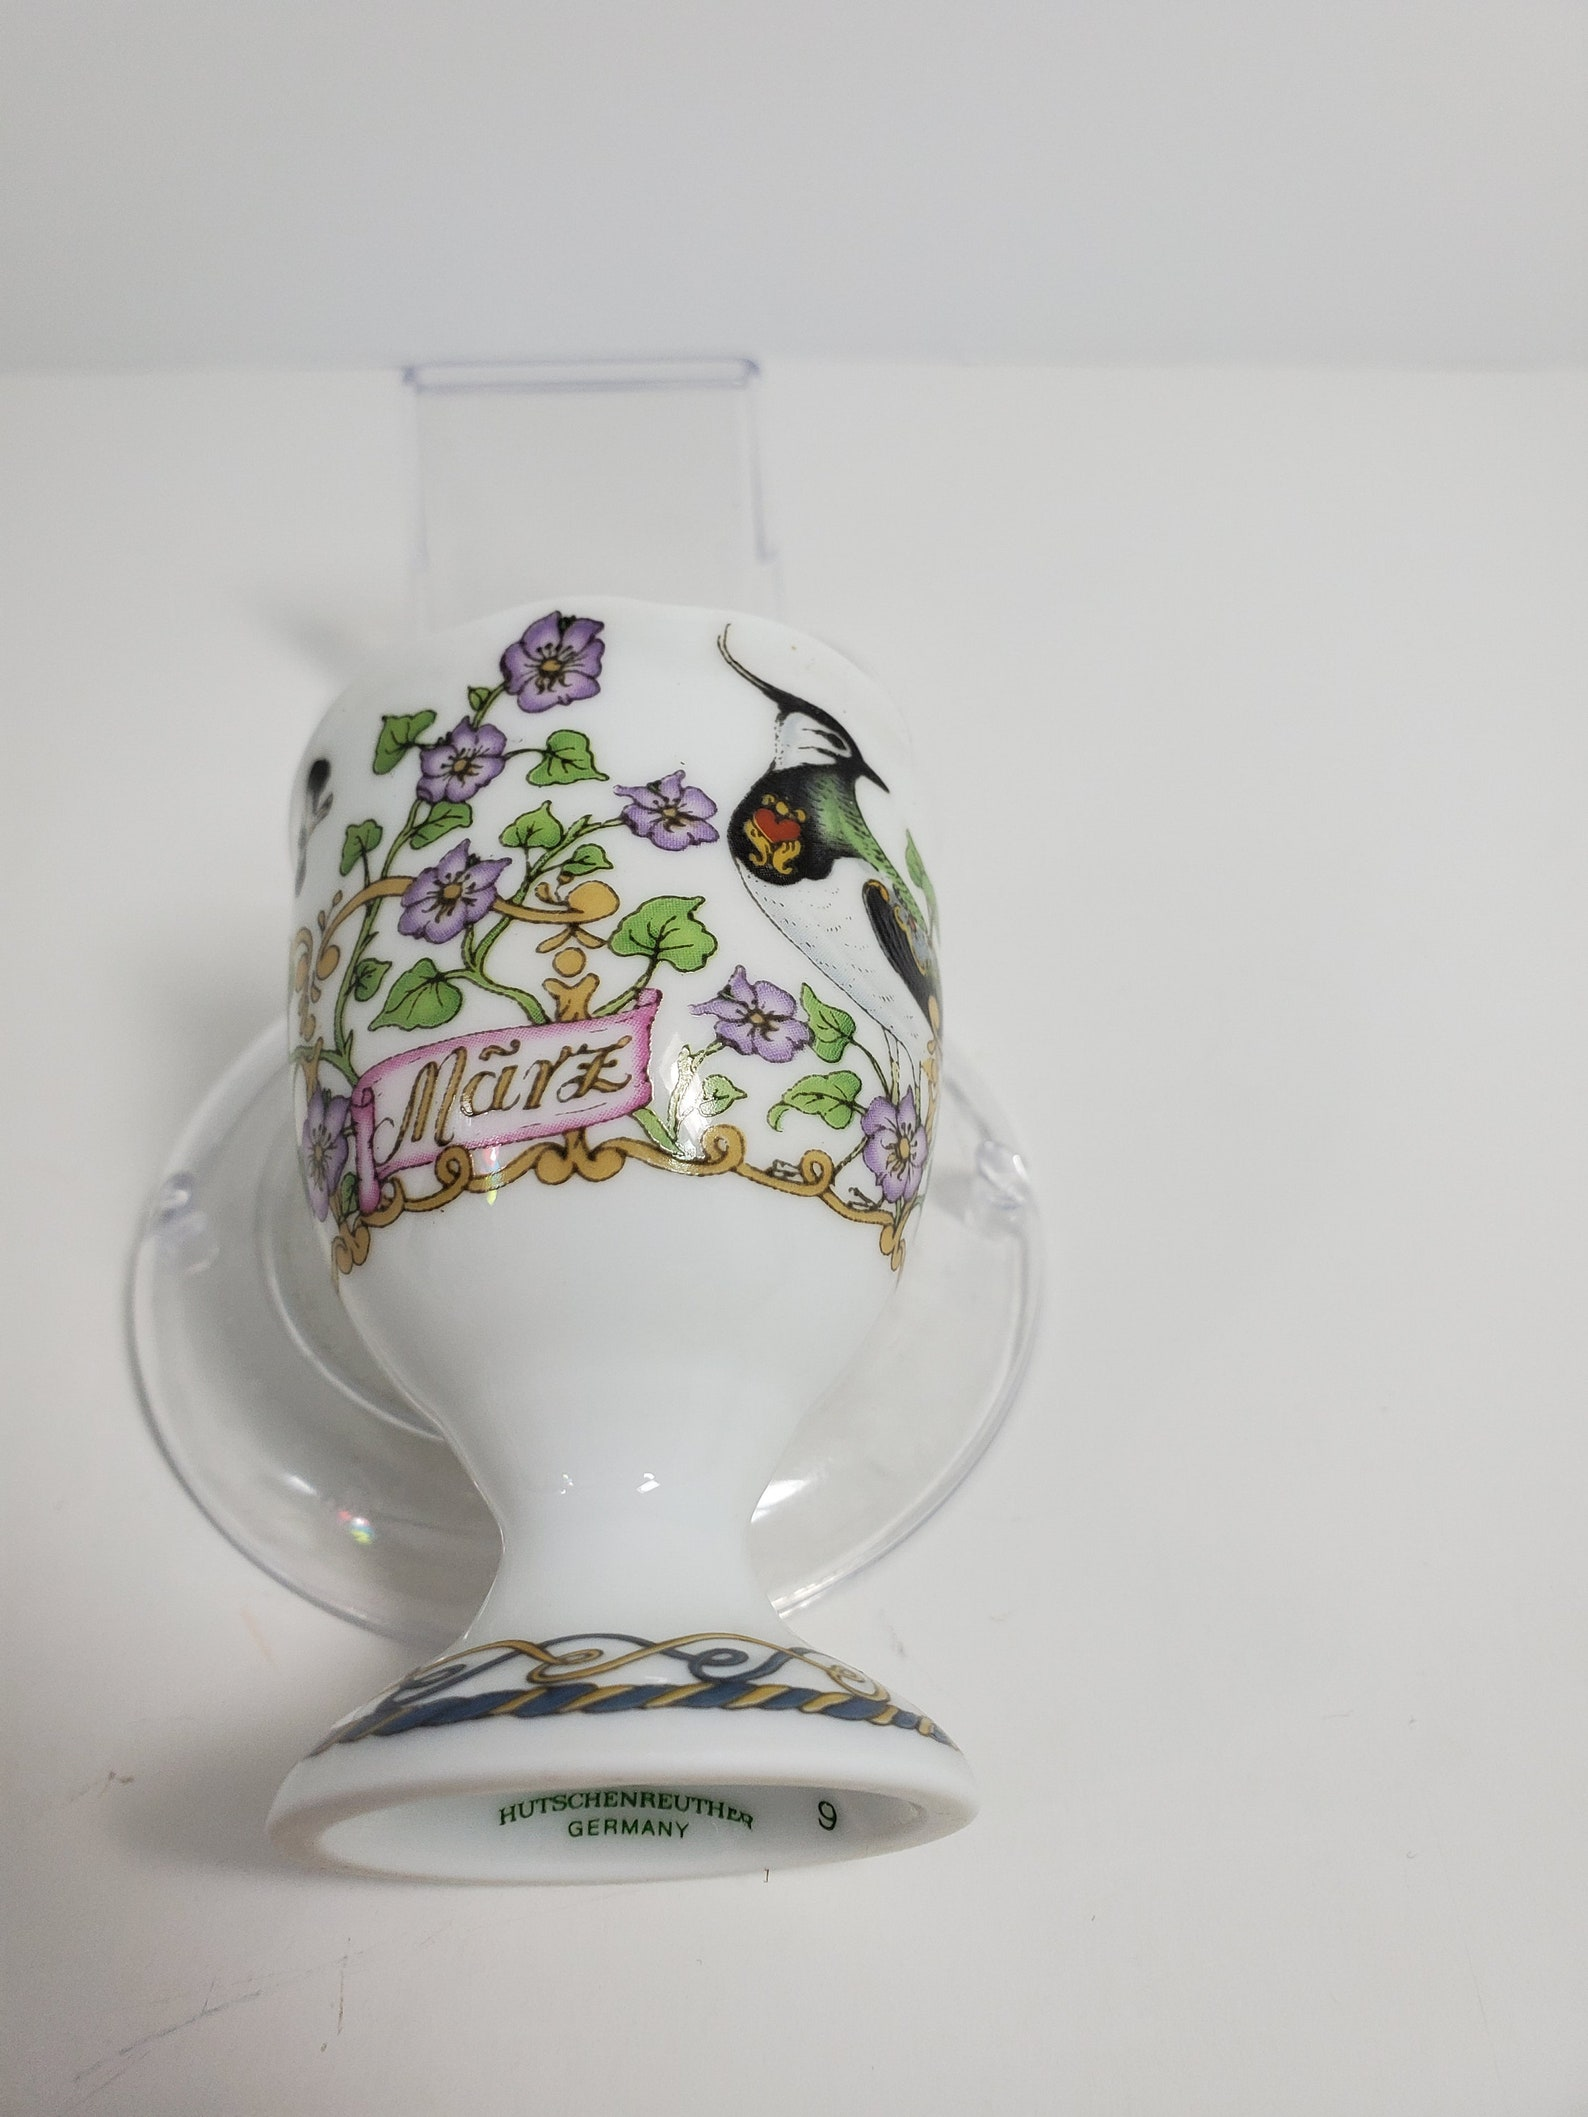 Hutschenreuther March Egg Cup, Germany